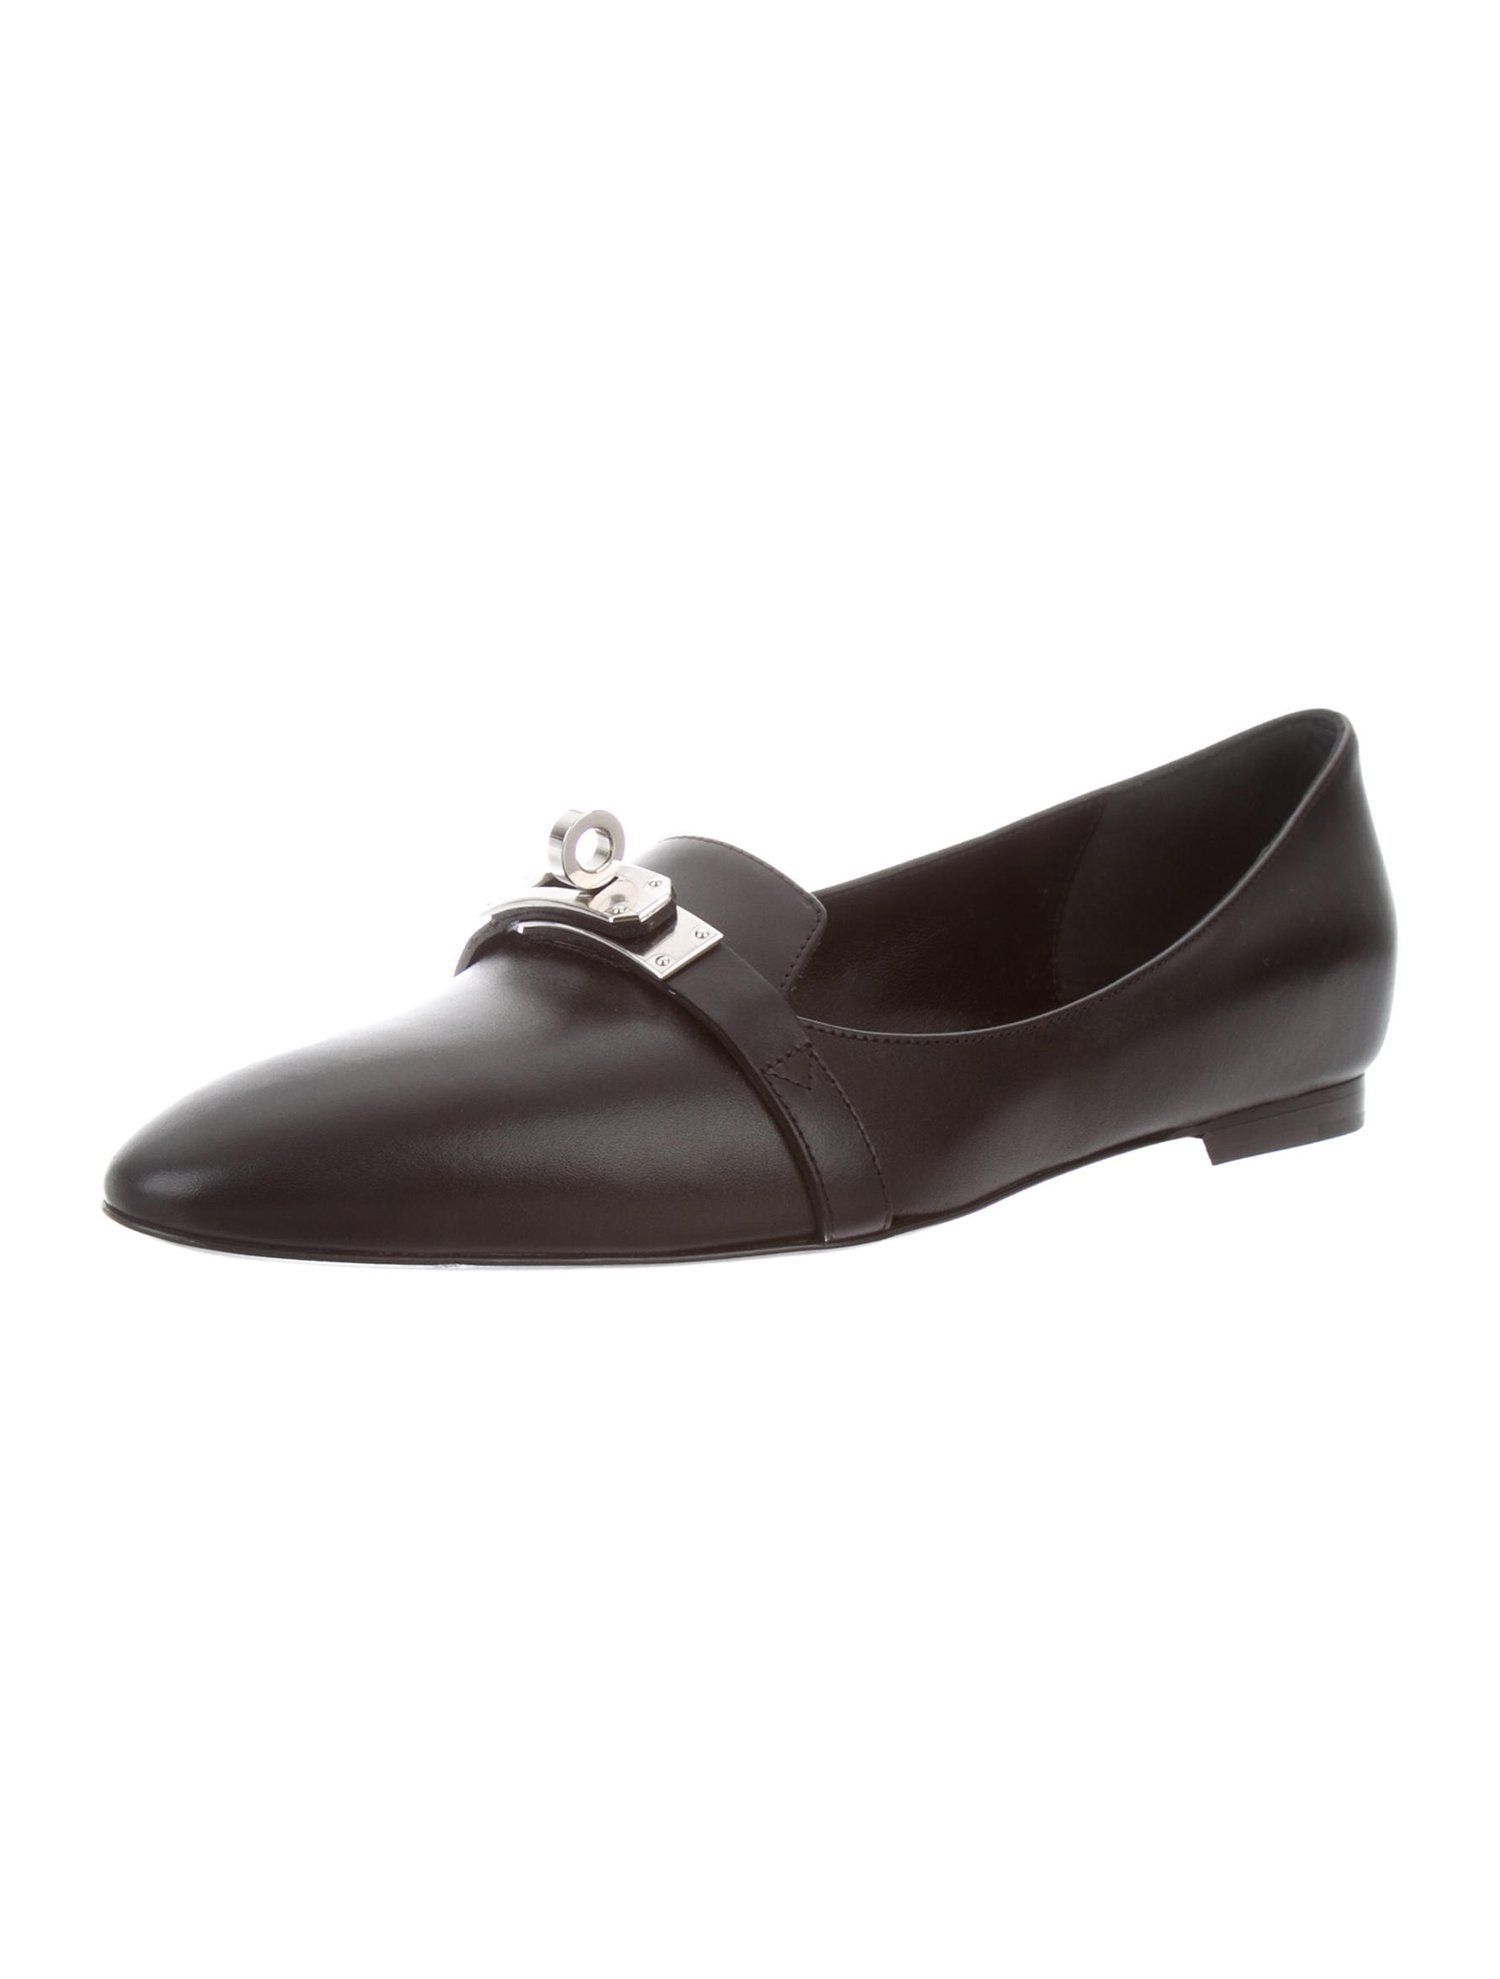 HERMES NEW Black Lather Palladium Kelly Turn Lock Flats Loafers Shoes For  Sale at 1stdibs